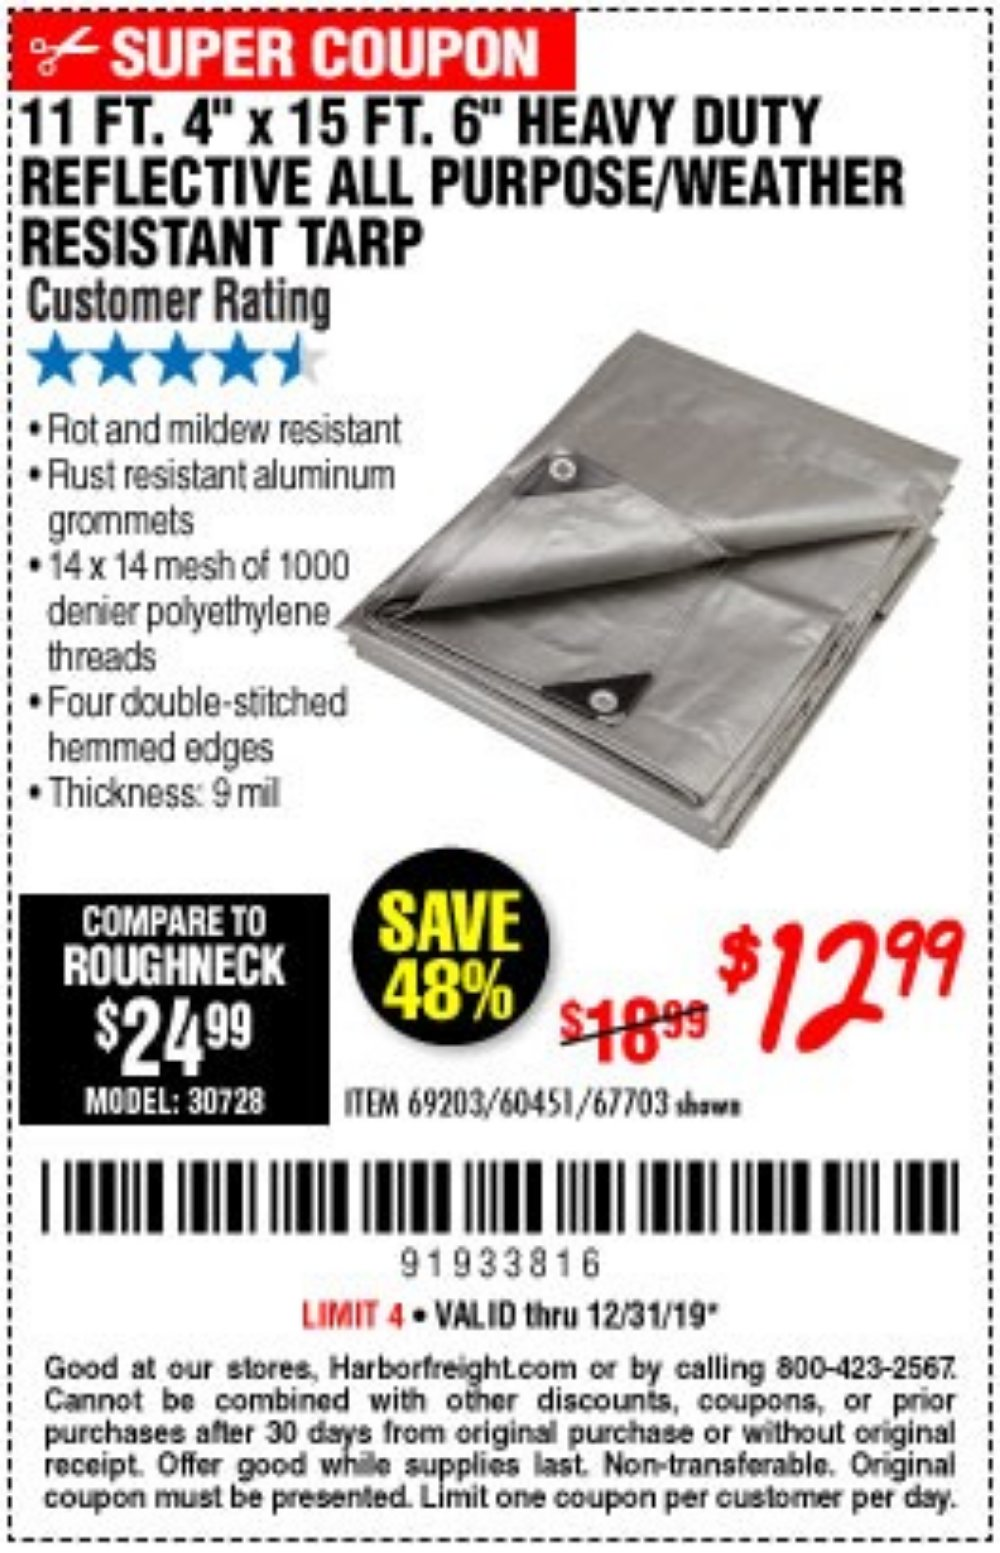 Harbor Freight Coupon, HF Coupons - 11 Ft. 4 In. X 15 Ft. 6 In. Silver/heavy Duty Reflective All Purpose/weather Resistant Tarp